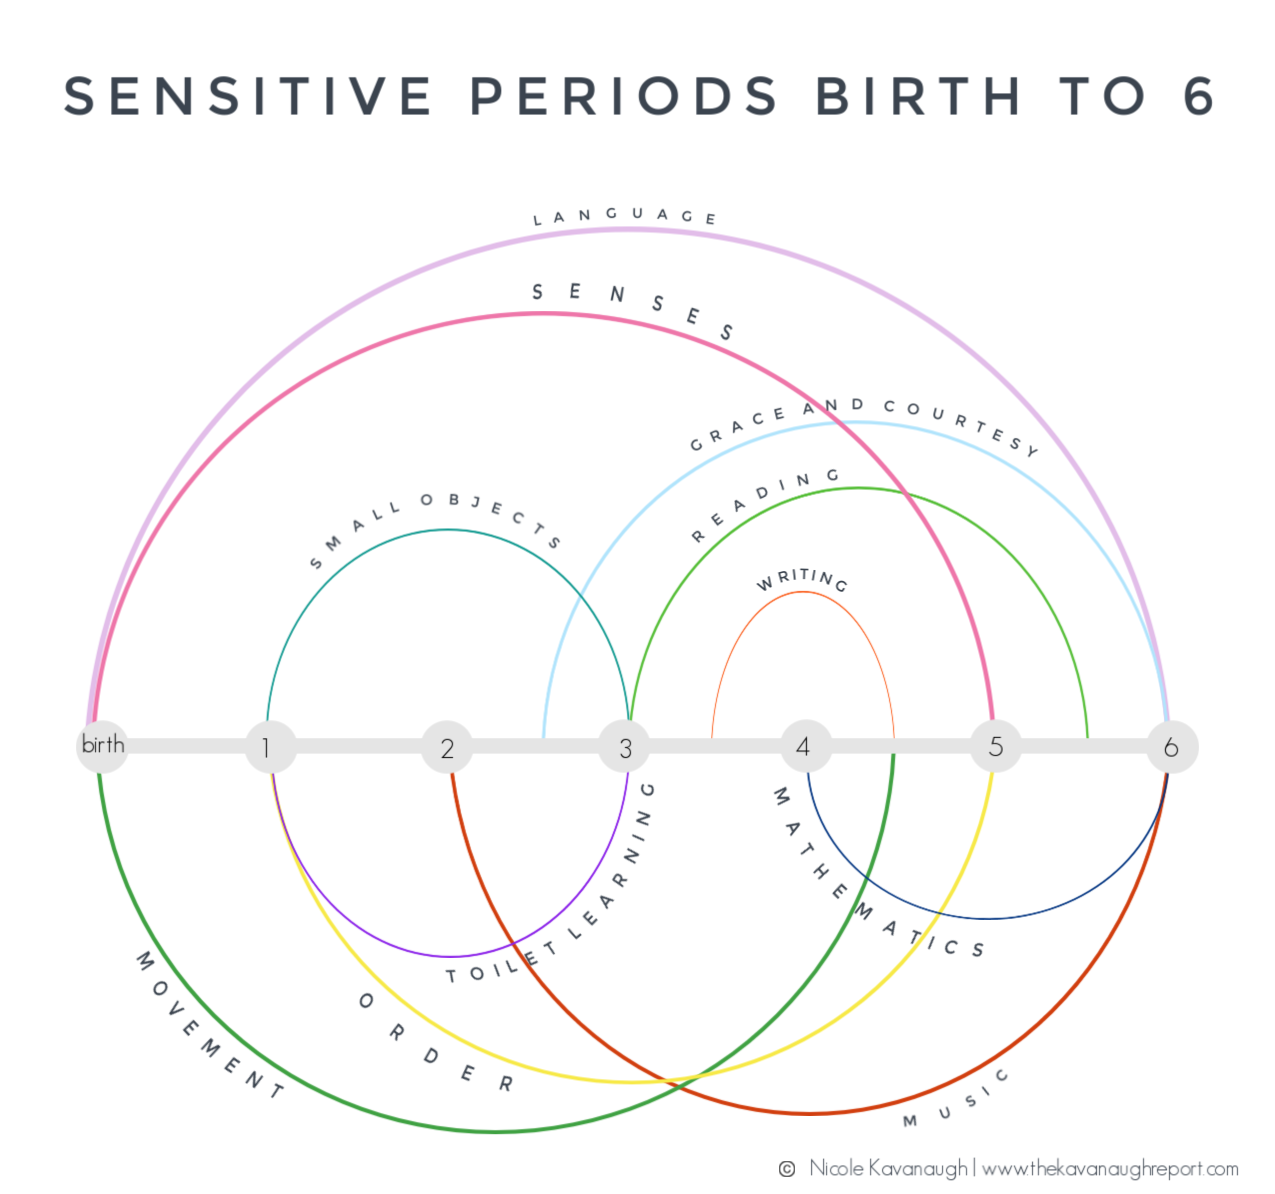 Get started with Montessori with this visual guide to sensitive periods. Sensitive periods are important in choosing activities and parenting choices.